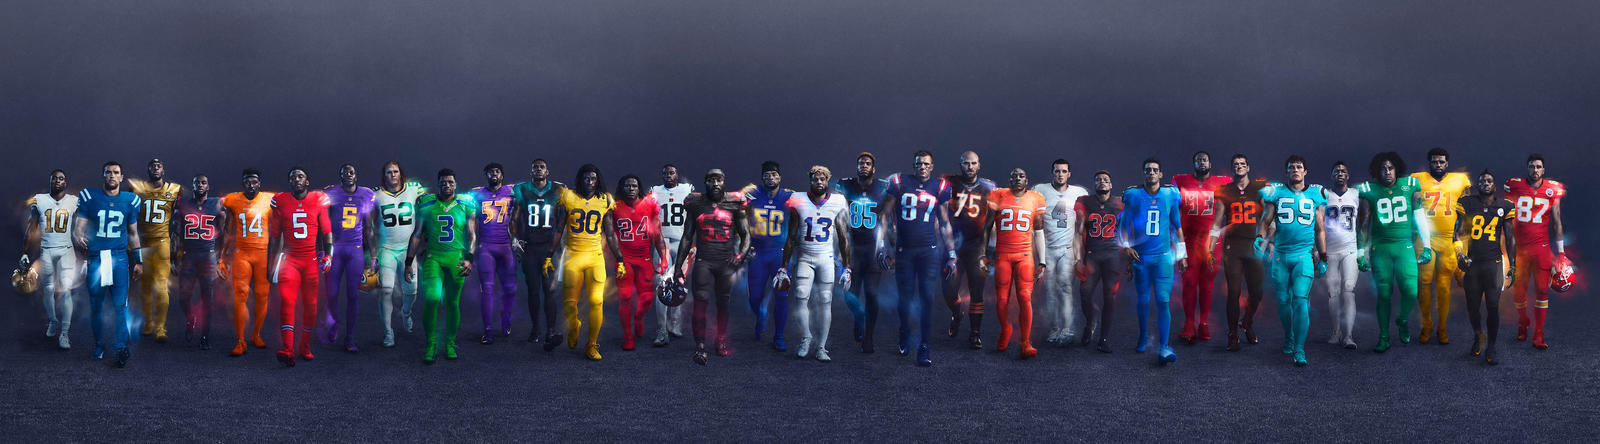 Nike Football NFL Color Rush 2016 Group Wide native 1600